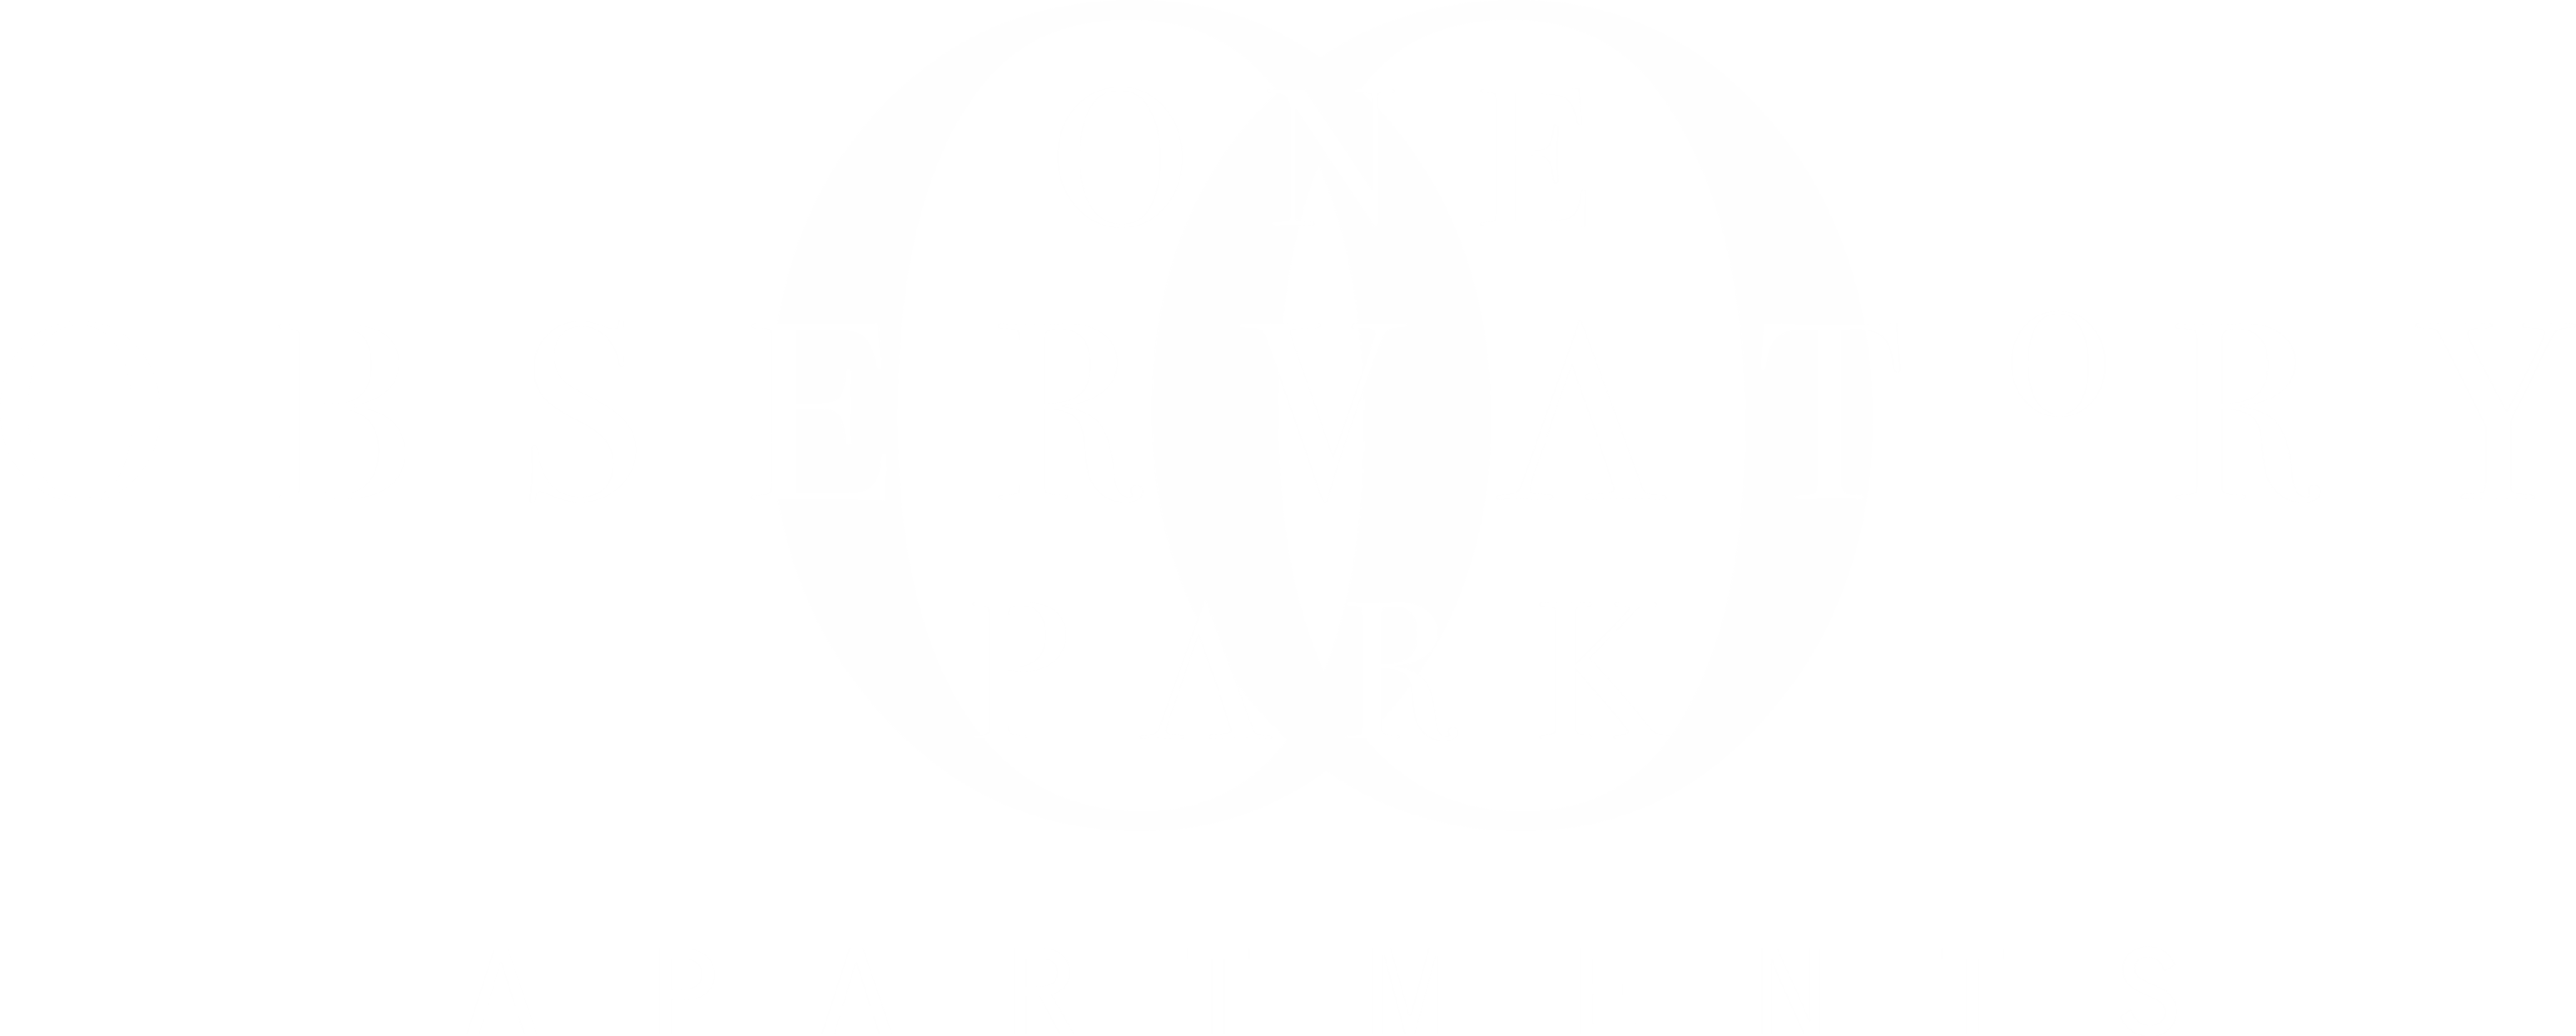 Business logo of One Observatory Park Apartments